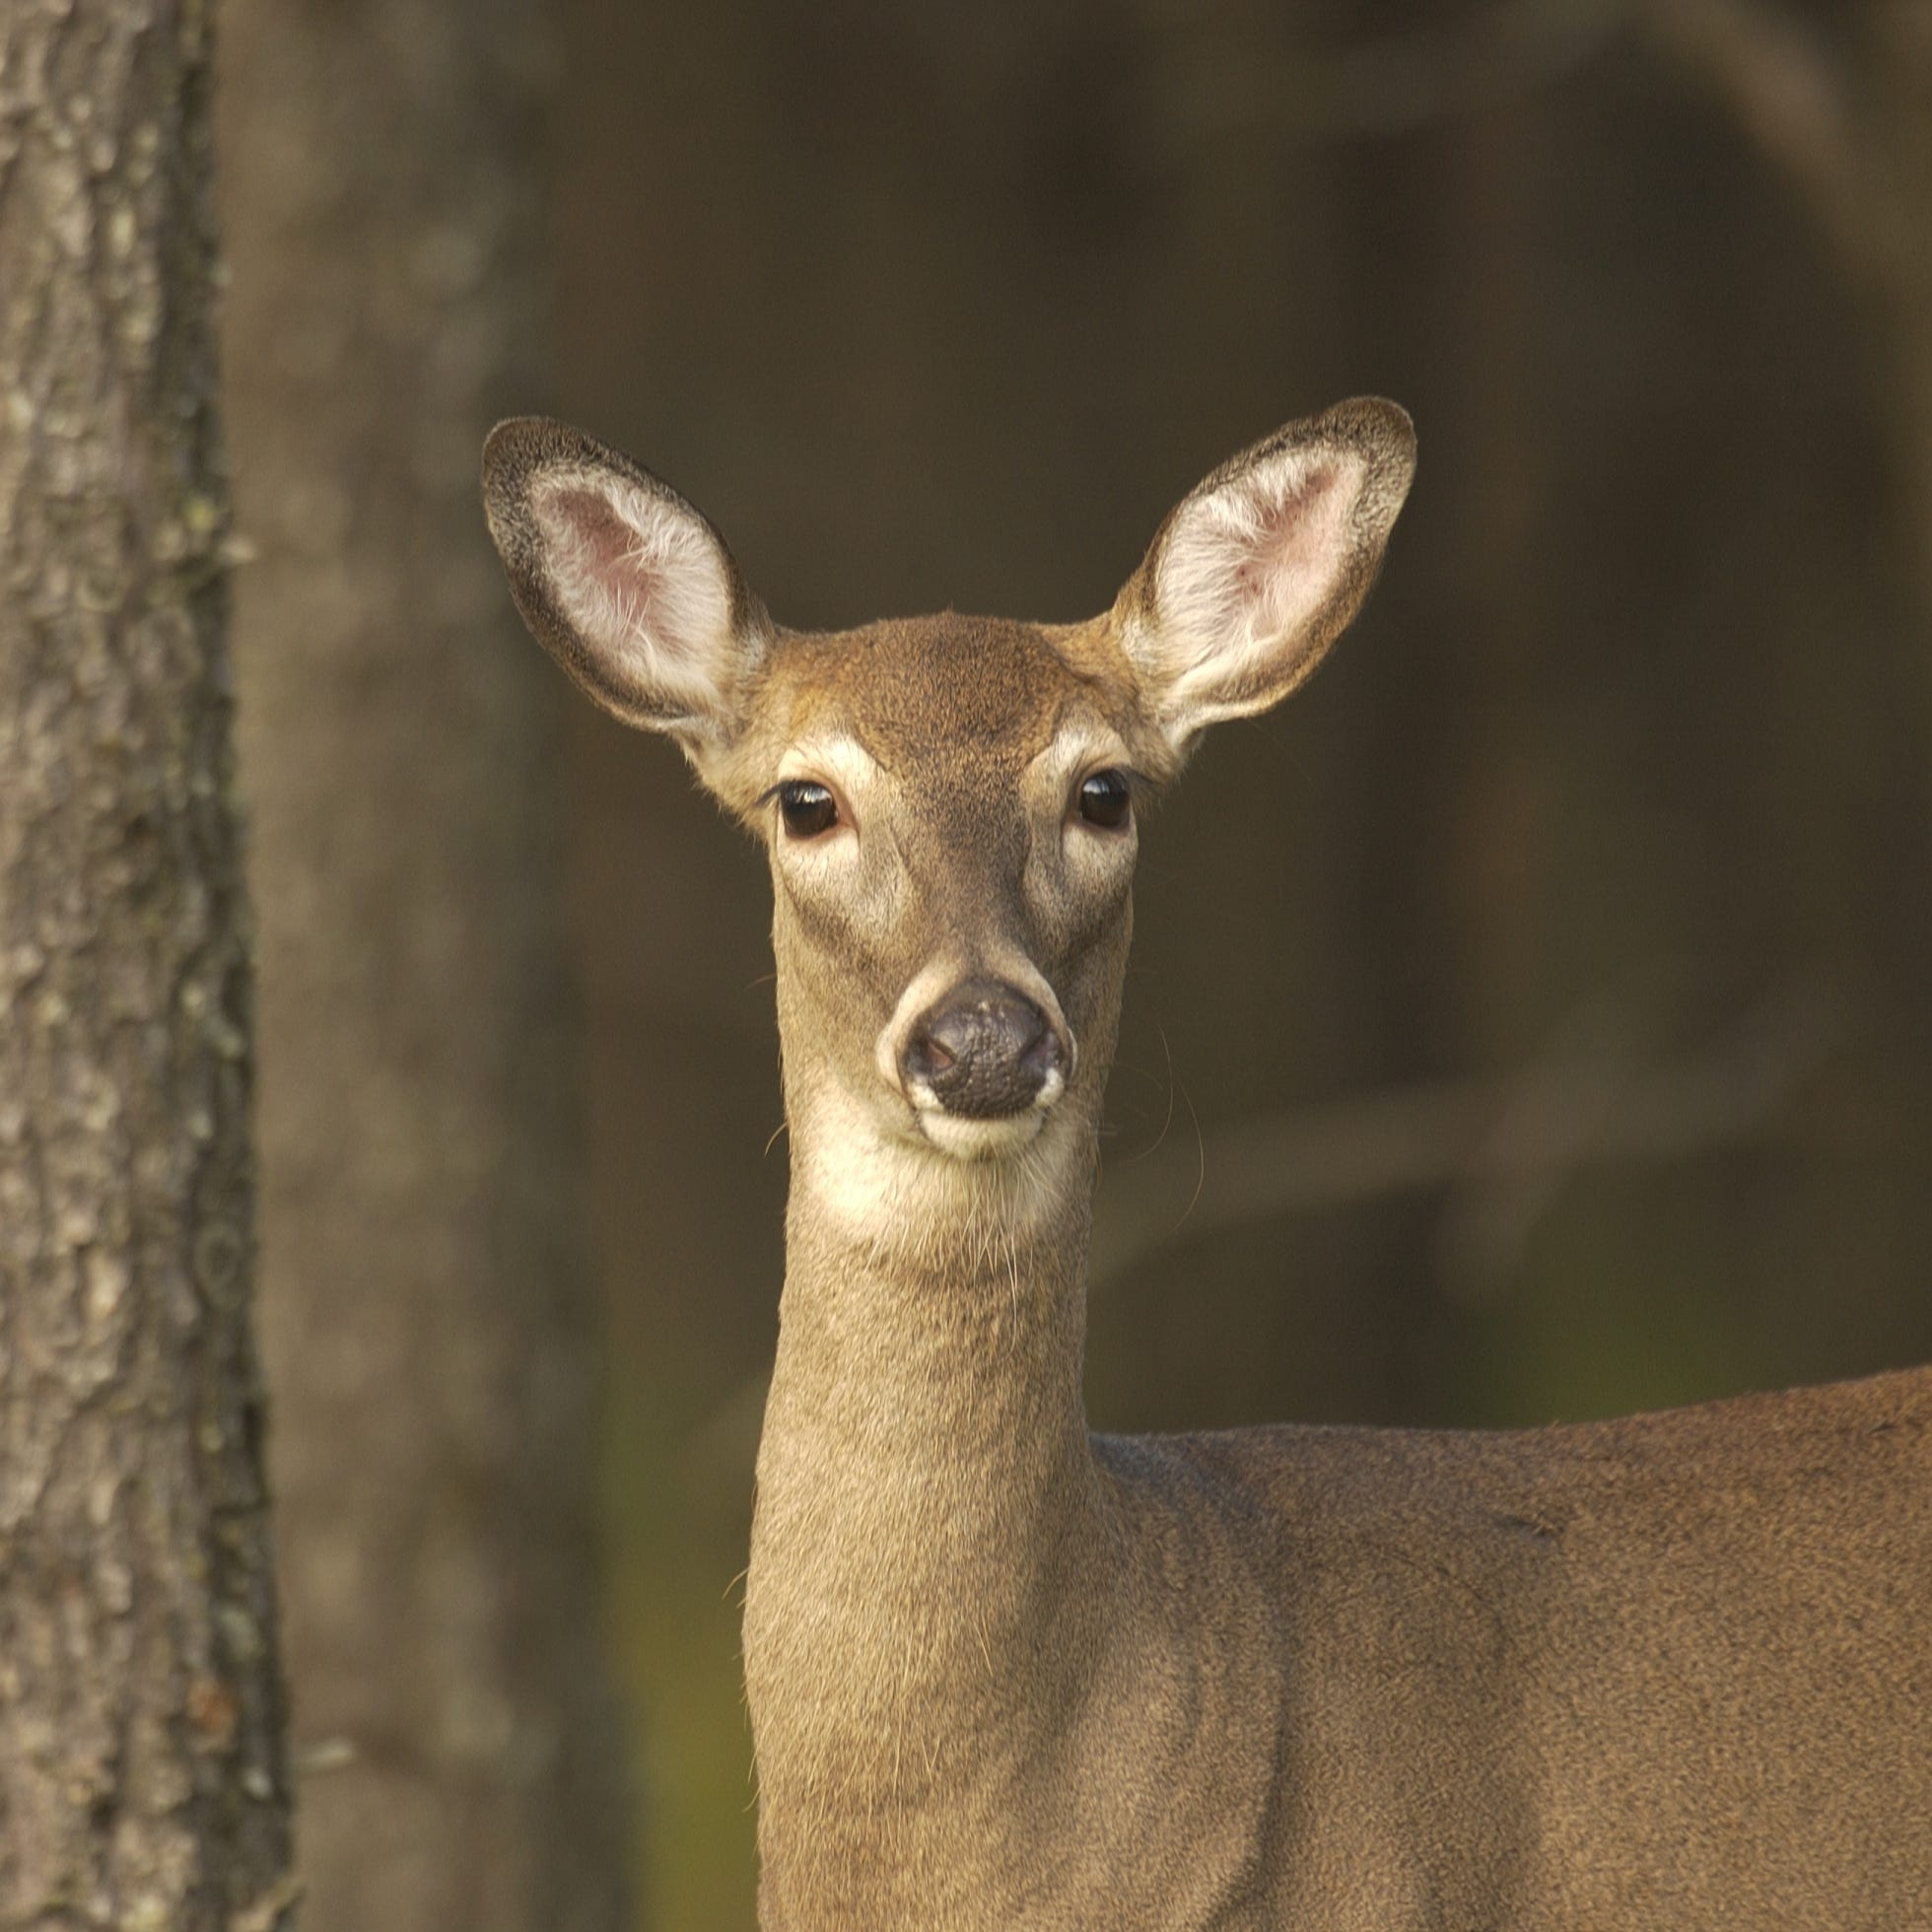 Deer in your headlights? It's better to hit it than to swerve